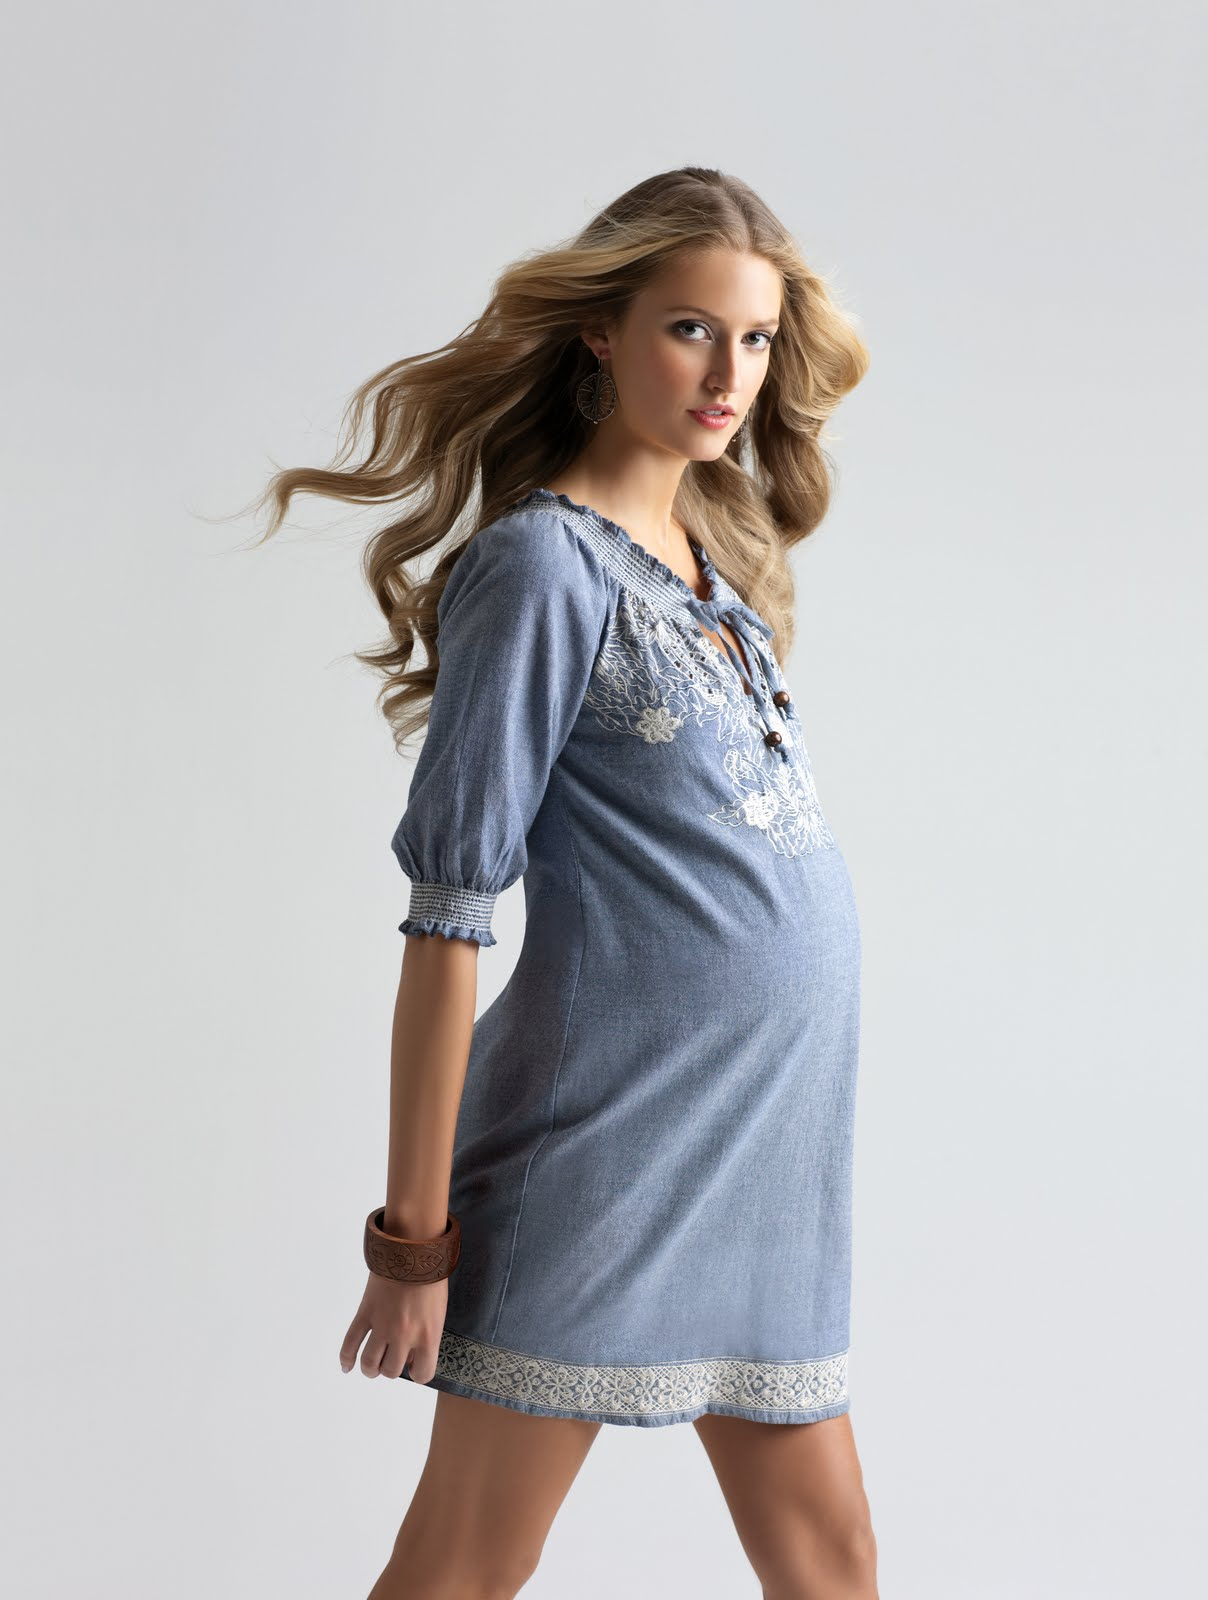 Maternity Clothes Whether you're pregnant or nursing, there are essential items you should have in your closet. Create a wardrobe full of maternity clothing that's the perfect balance of practical and stylish.